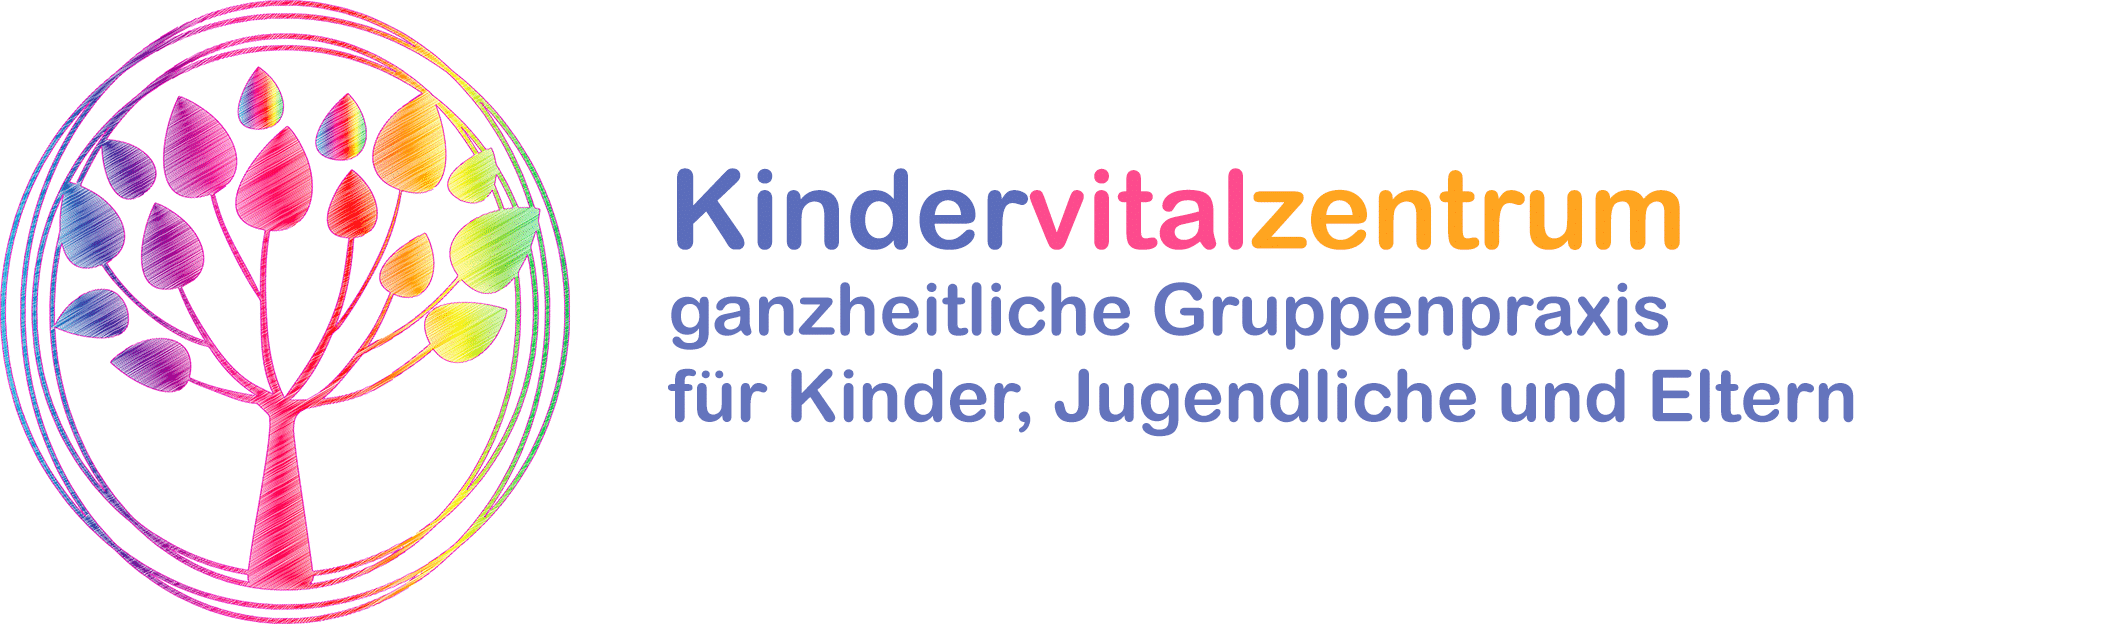 Kindervitalzentrum